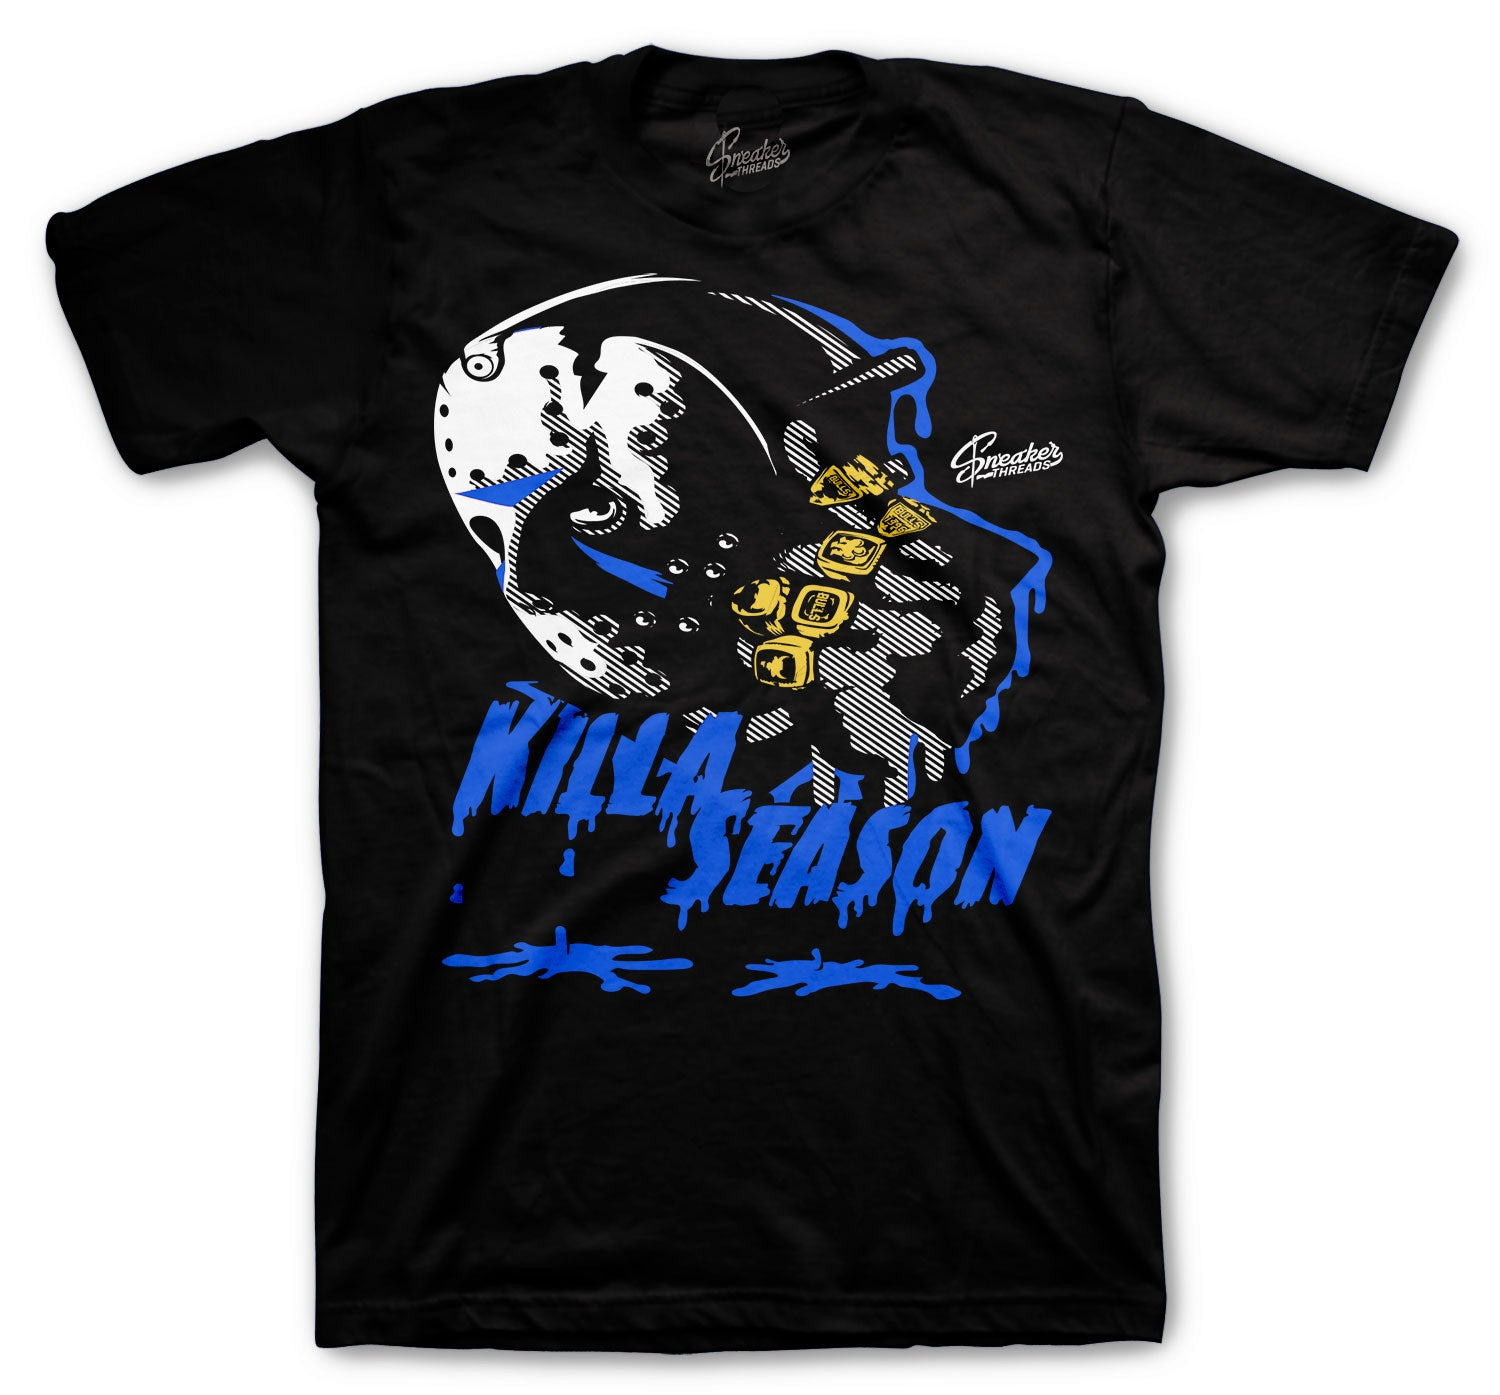 Air Max 90 Hyper Royal Killa Season Shirt